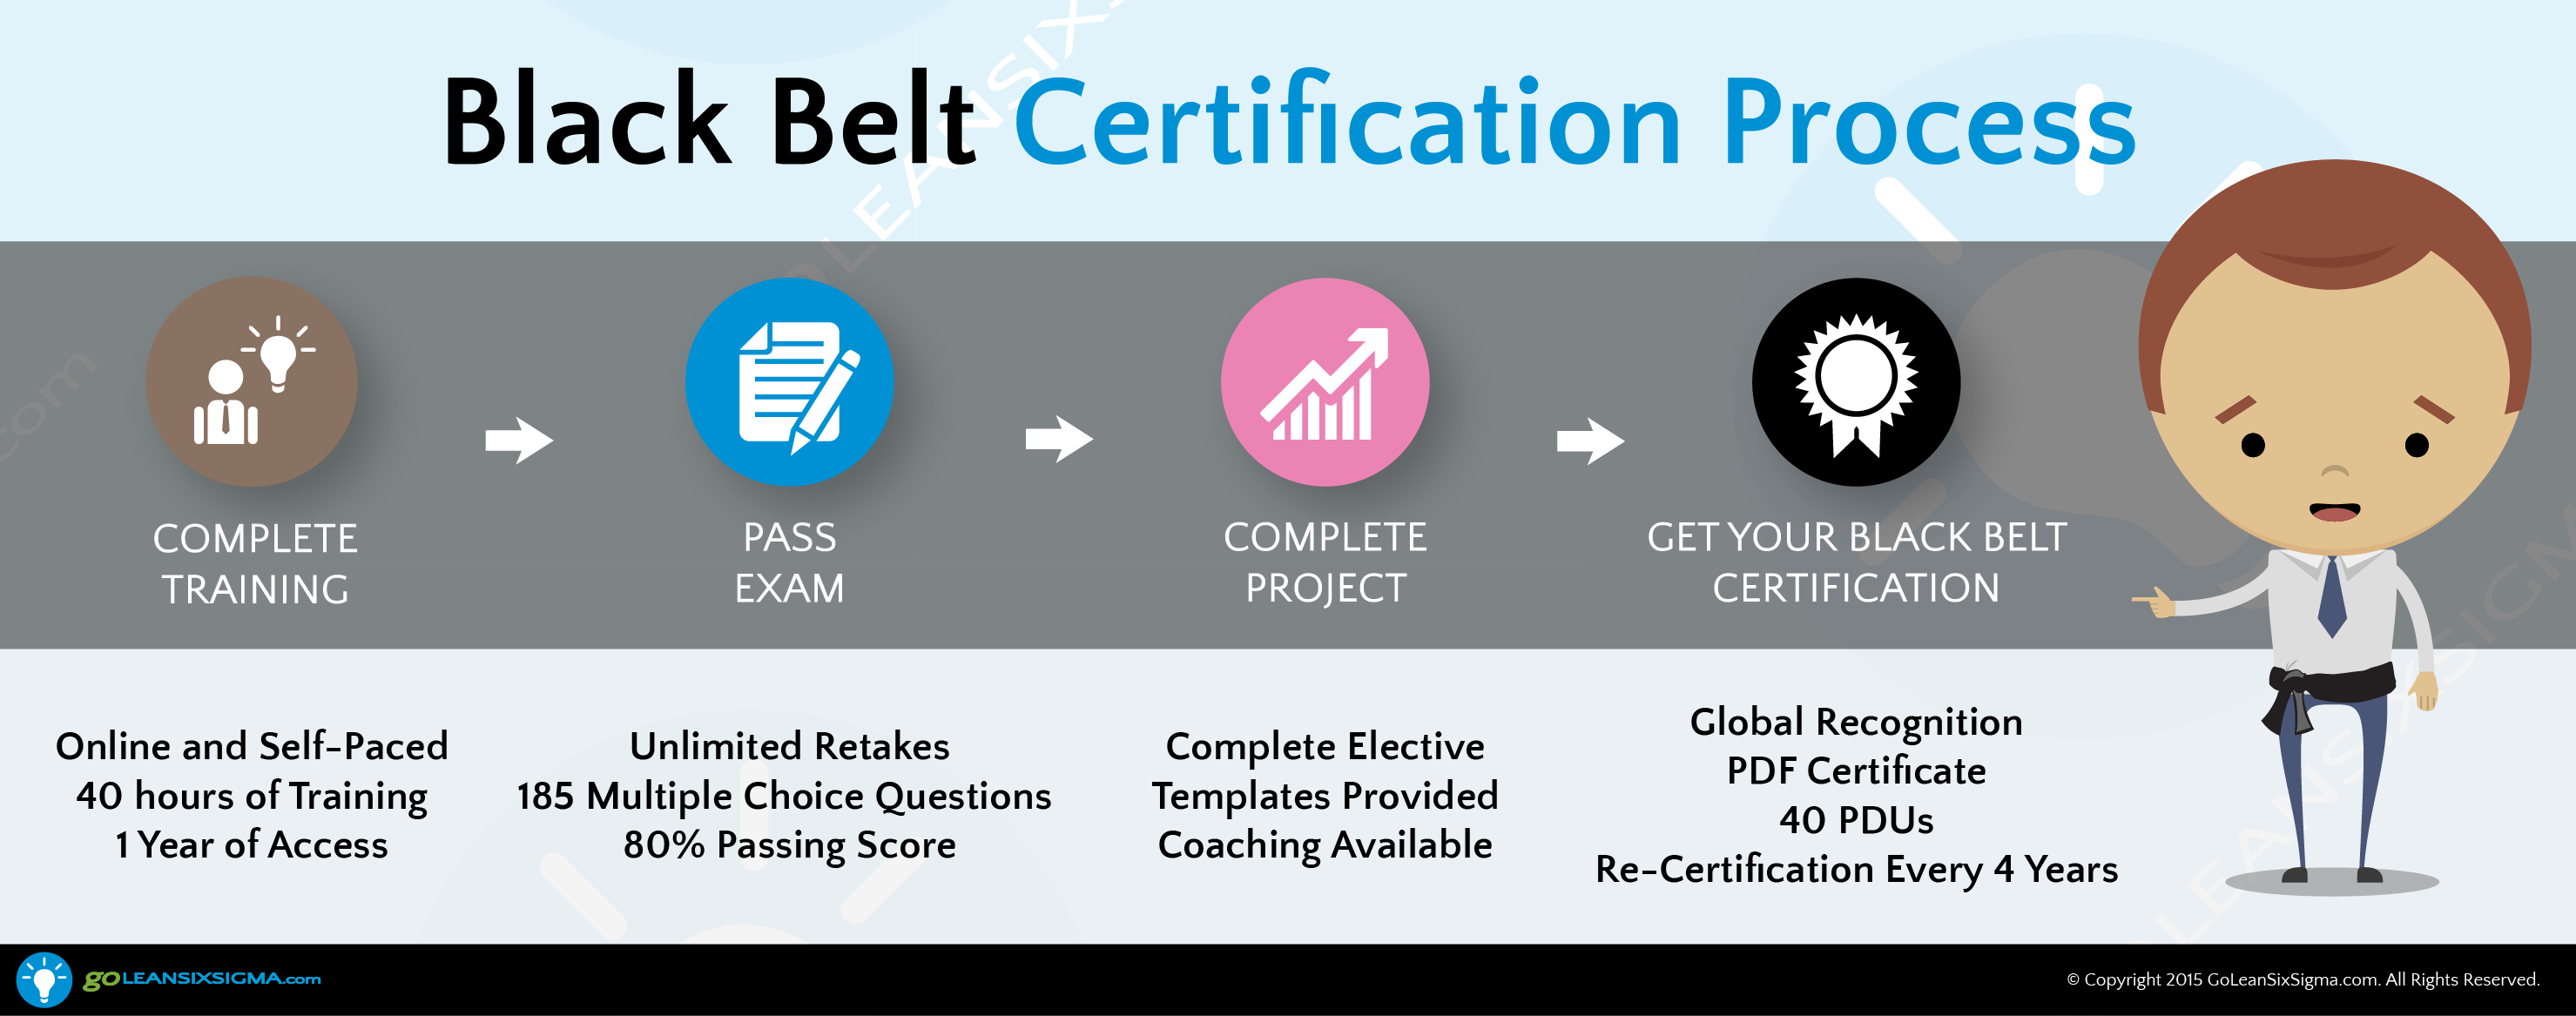 Black Belt Certification Process Black Belt Training